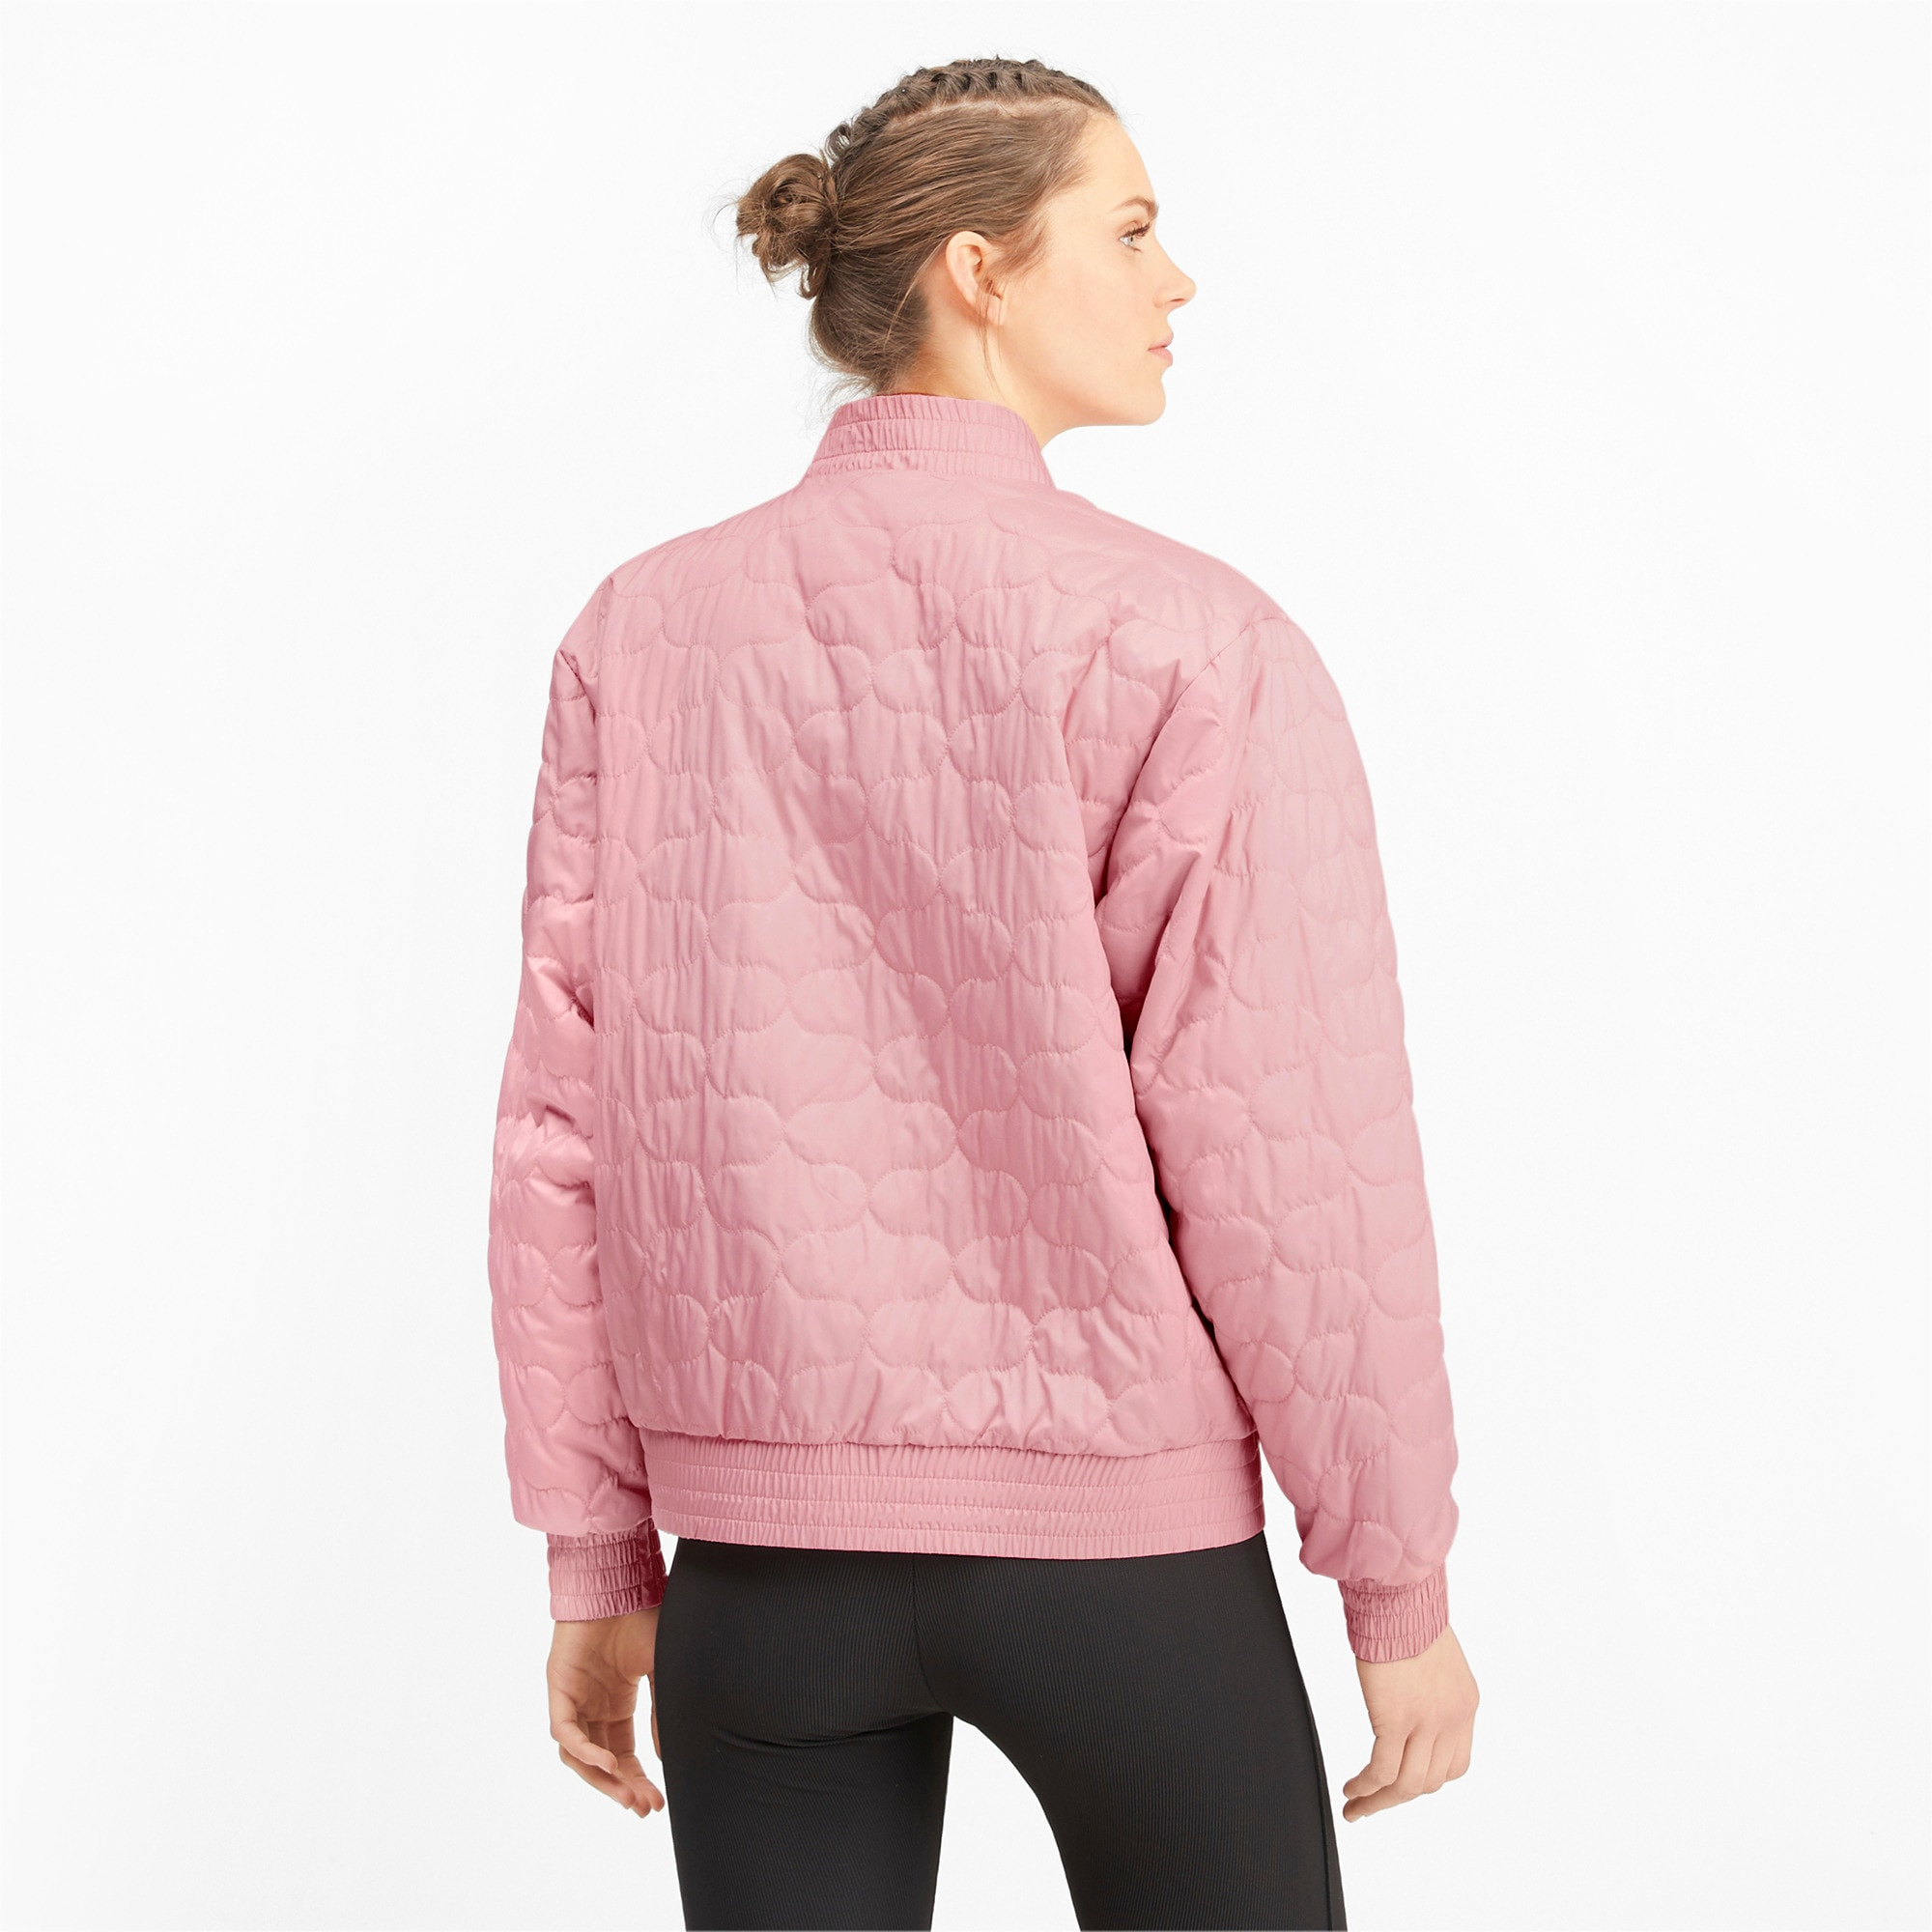 Thumbnail 3 of Damen Gewebte Bomberjacke, Bridal Rose, medium